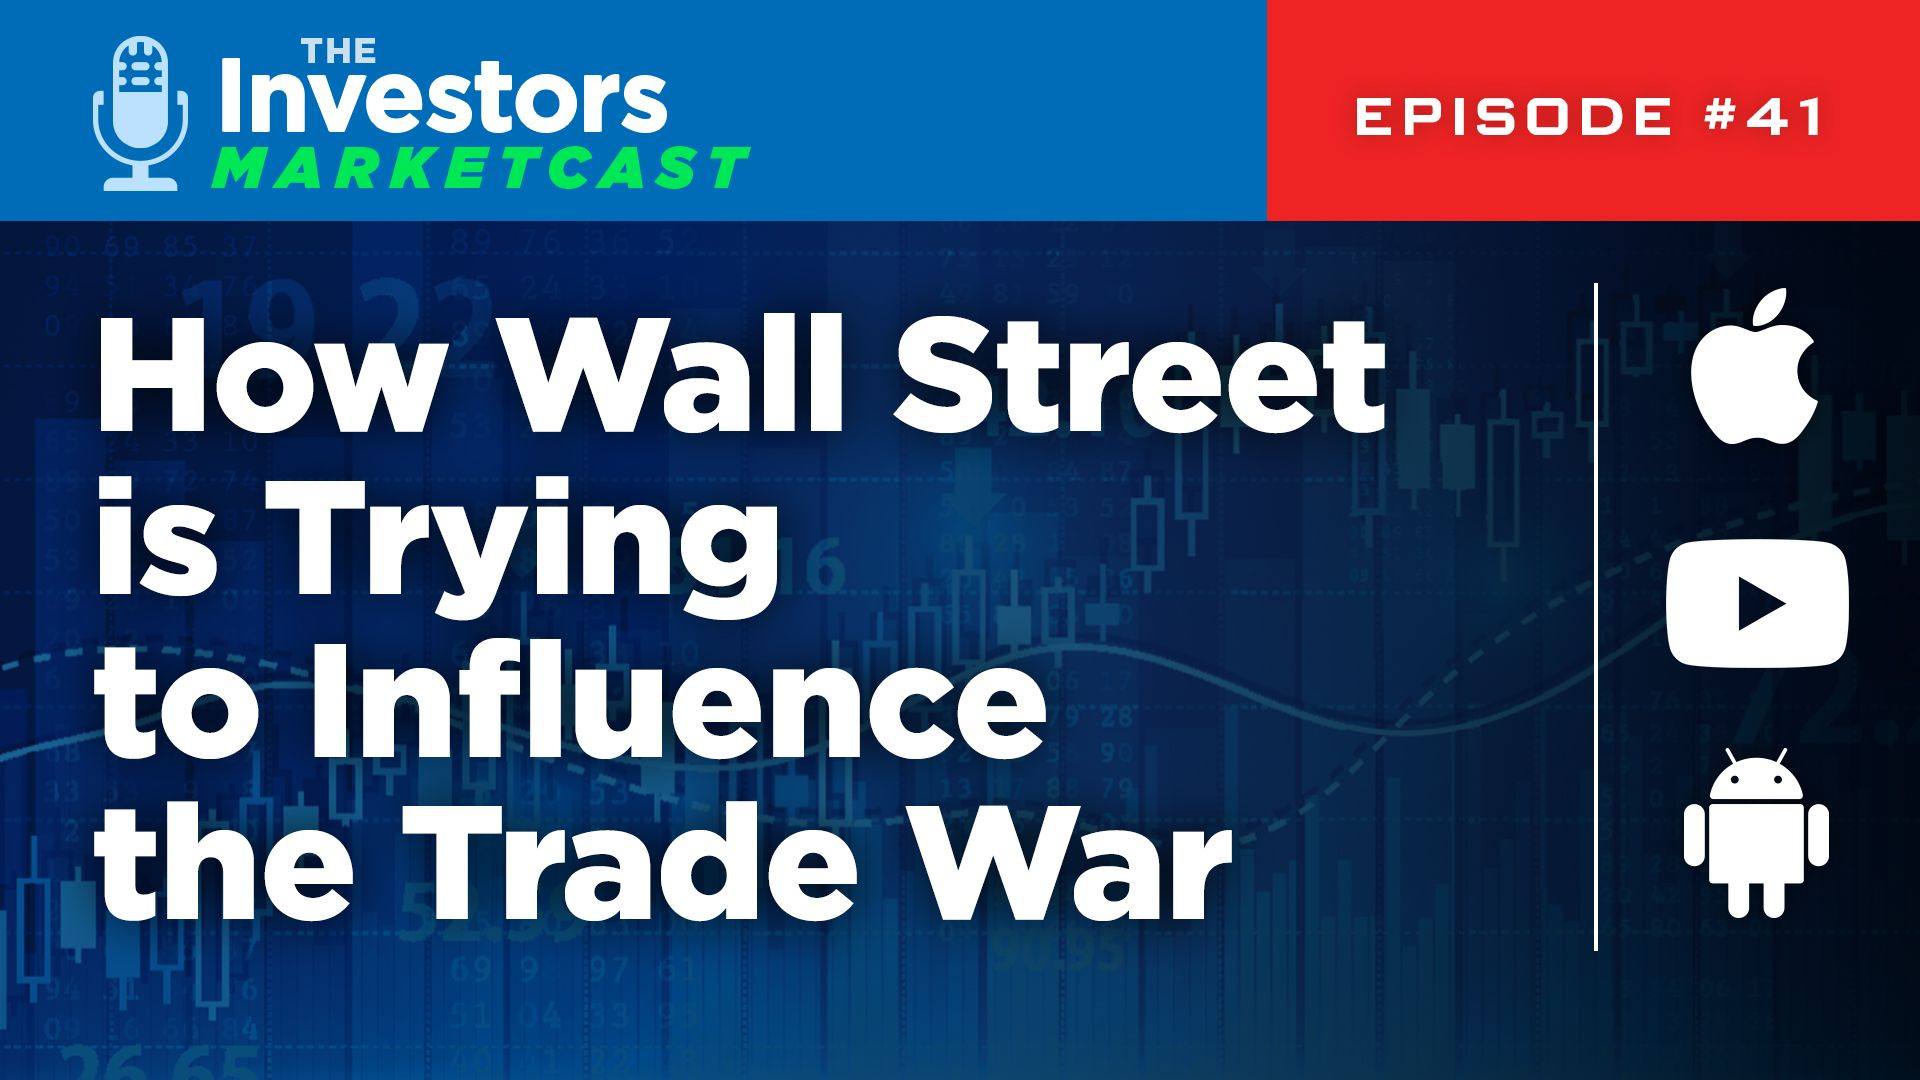 How Wall Street is Trying to Influence the Trade War